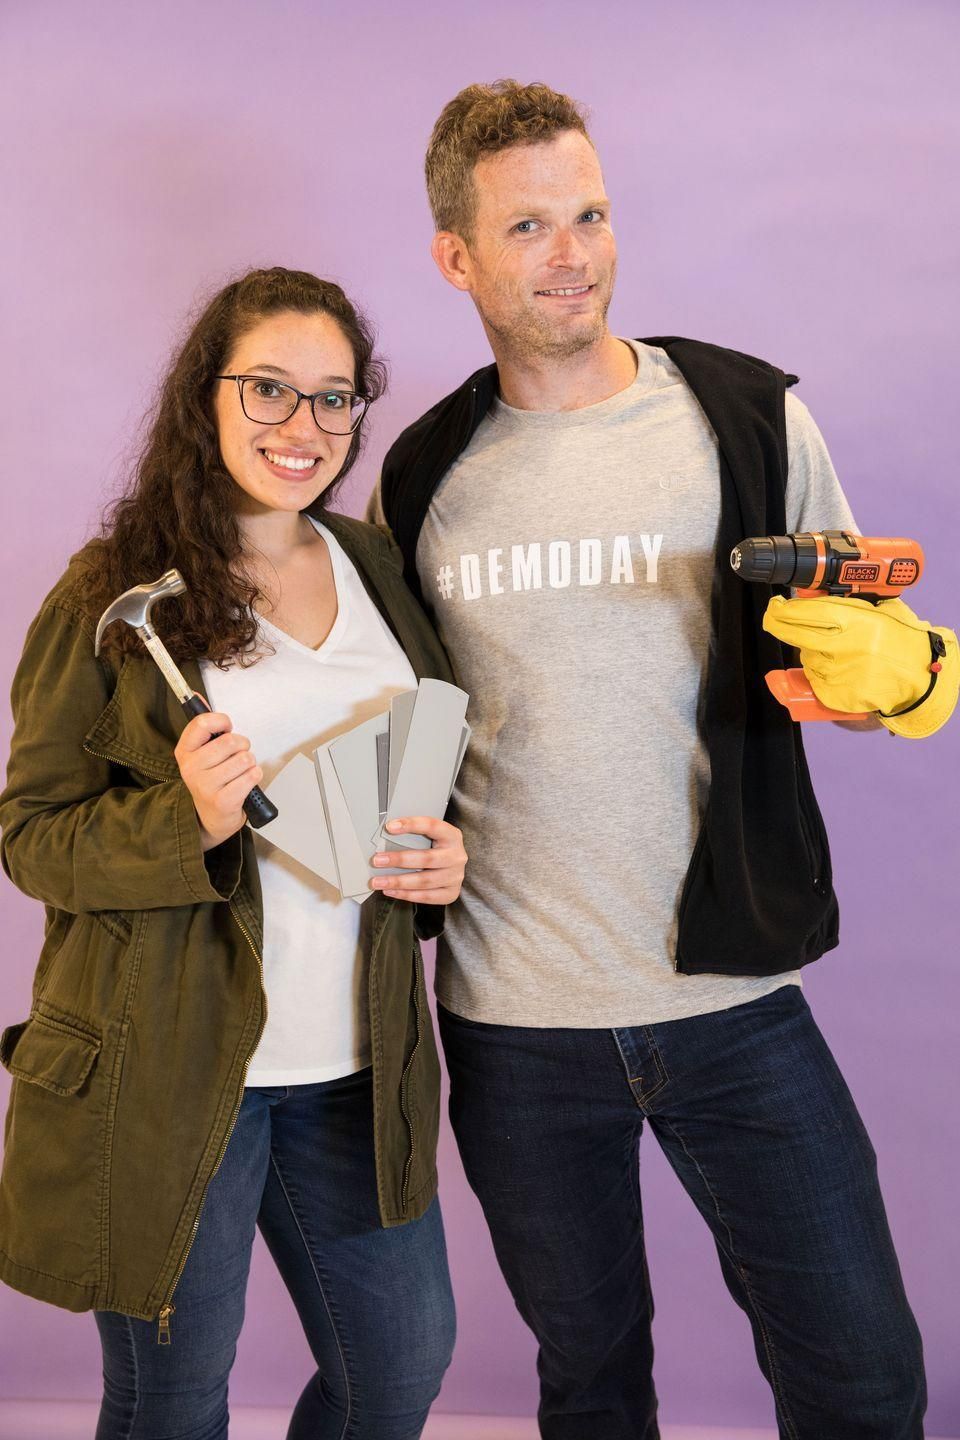 """<p>Round up a hammer, drill, and paint chips to show that you're ready for Demo Day in these <em>Fixer Upper</em>-inspired looks. Next stop: Waco! </p><p><a class=""""link rapid-noclick-resp"""" href=""""https://www.amazon.com/Demo-Day-Demoday-House-Flipper-T-Shirt/dp/B07PJC2DCT/?tag=syn-yahoo-20&ascsubtag=%5Bartid%7C10055.g.2625%5Bsrc%7Cyahoo-us"""" rel=""""nofollow noopener"""" target=""""_blank"""" data-ylk=""""slk:SHOP DEMO DAY SHIRTS"""">SHOP DEMO DAY SHIRTS</a></p>"""